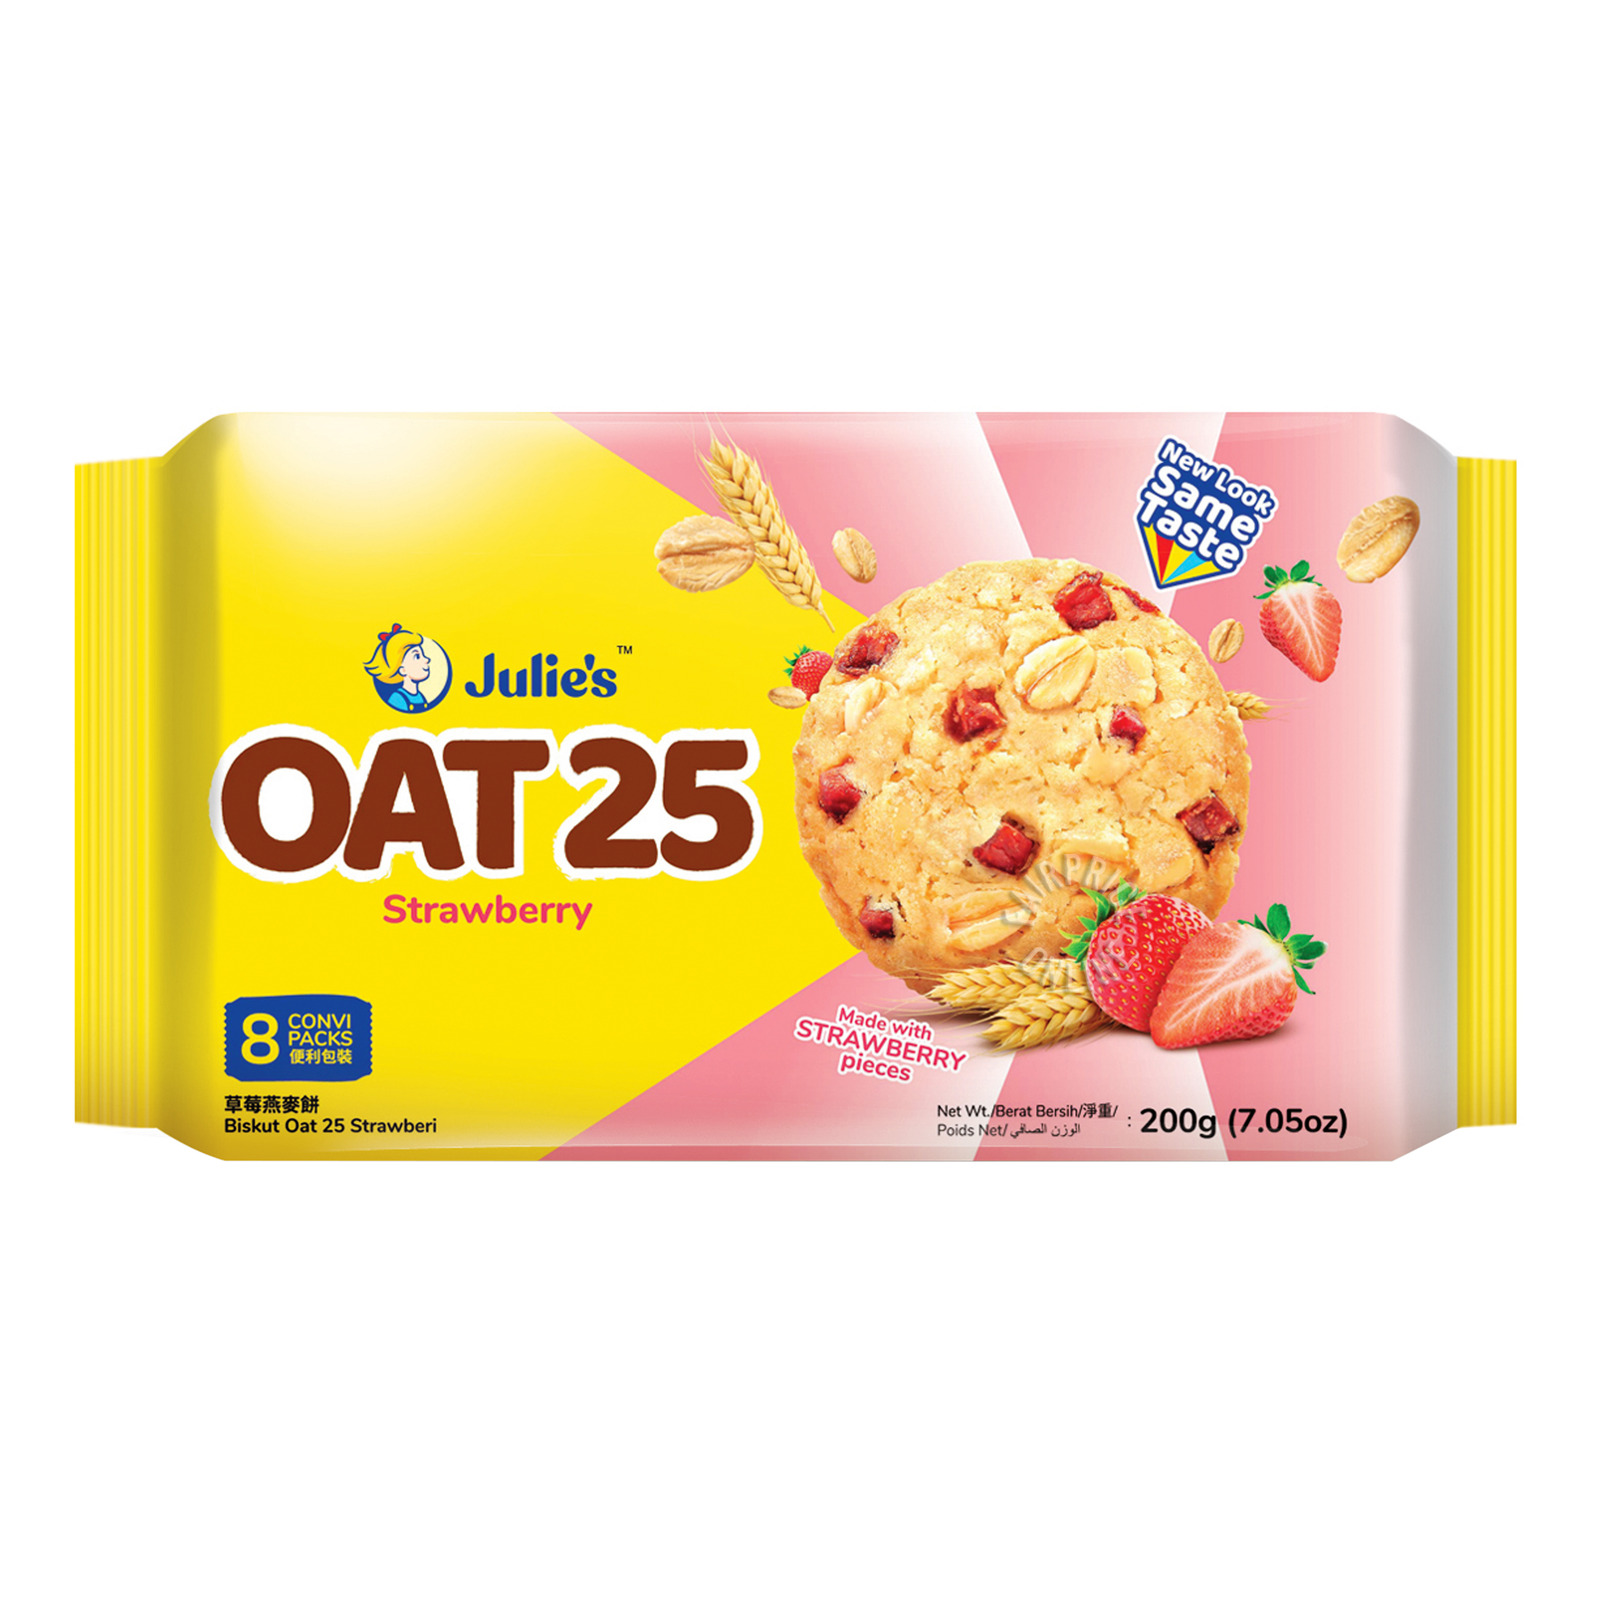 Julie's Oat 25 Biscuits With Real Strawberry Pieces